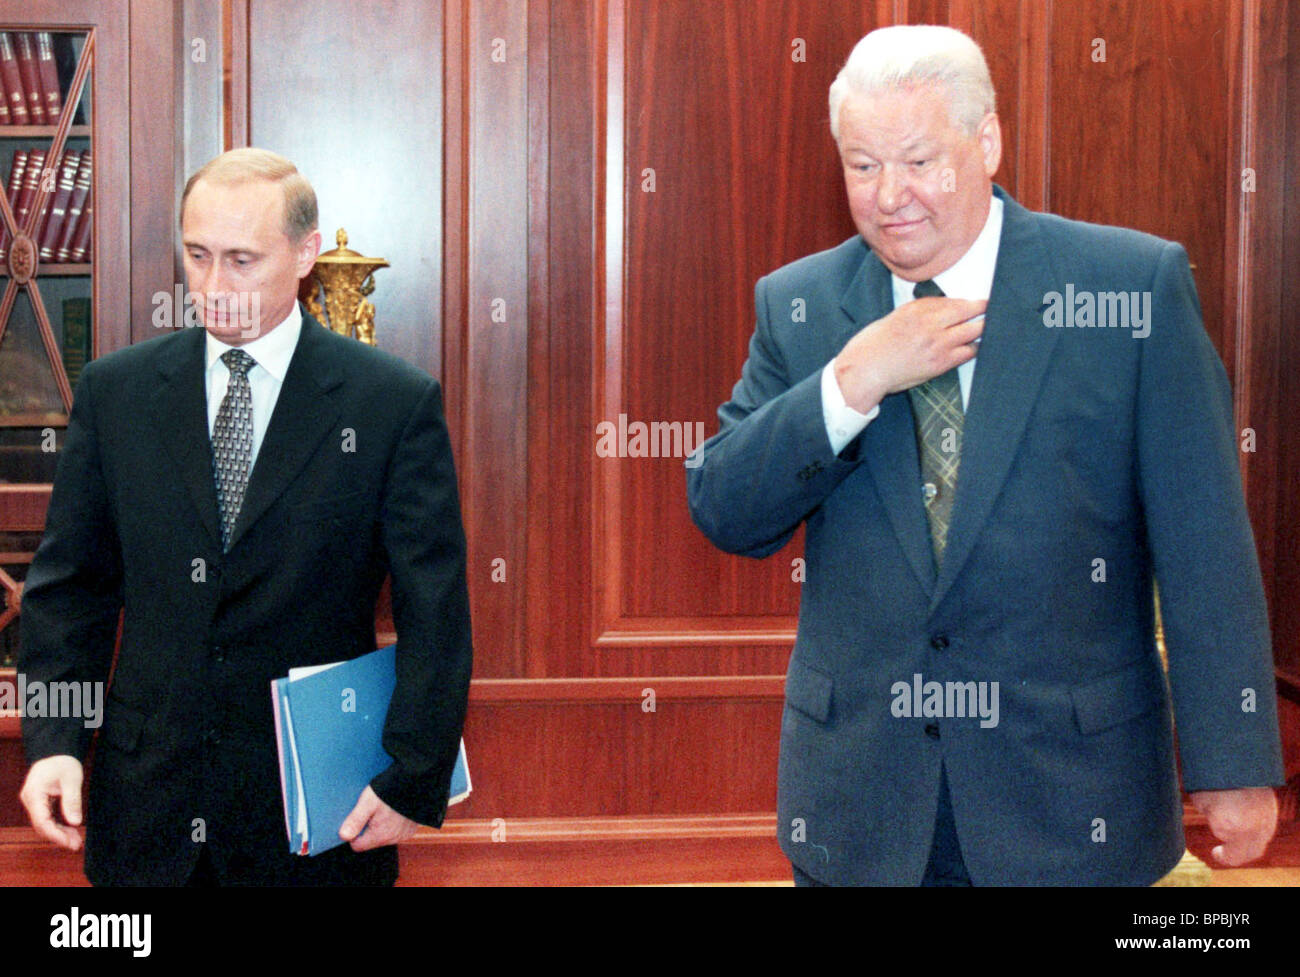 Russian President Boris Yeltsin shown during the meeting with Russian Security Council Secretary Vladimir Putin - Stock Image